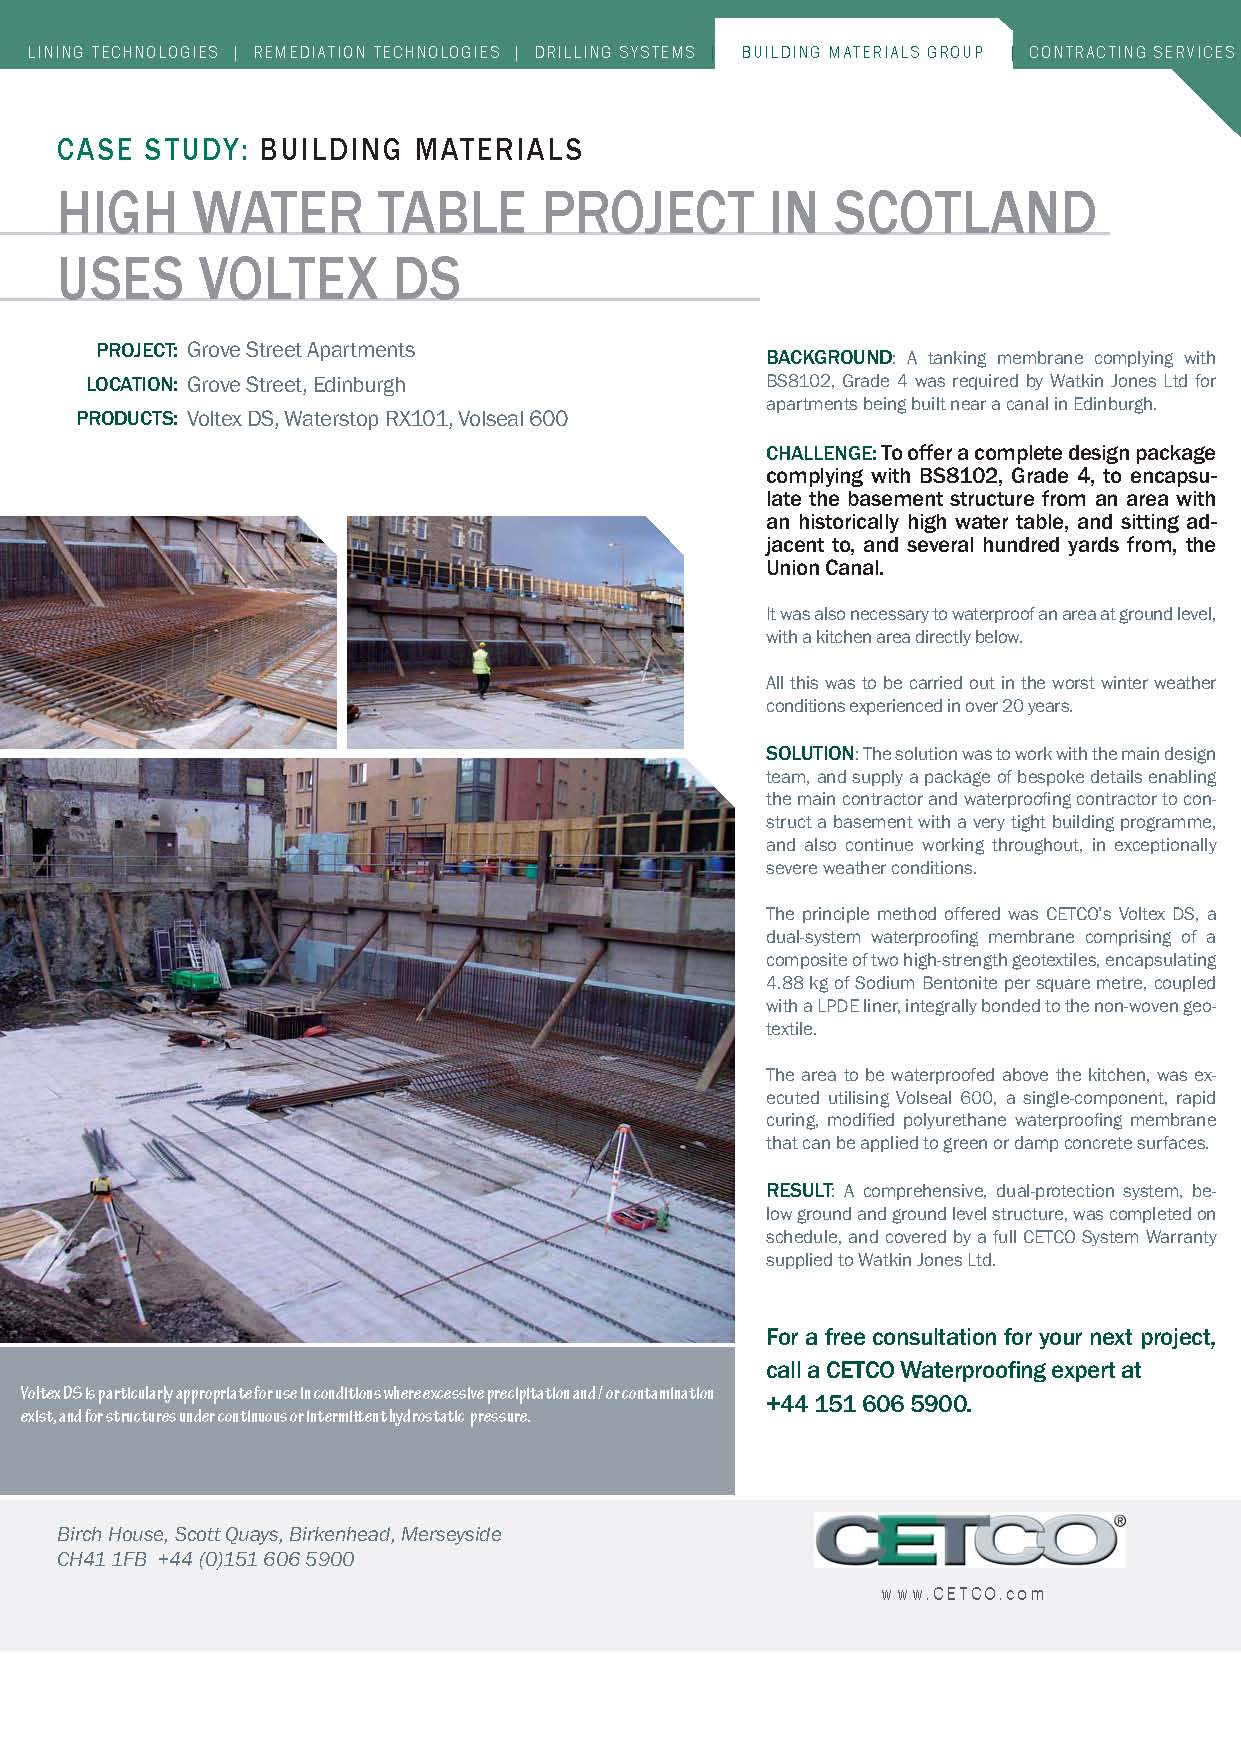 high water table project in scotland uses voltex ds